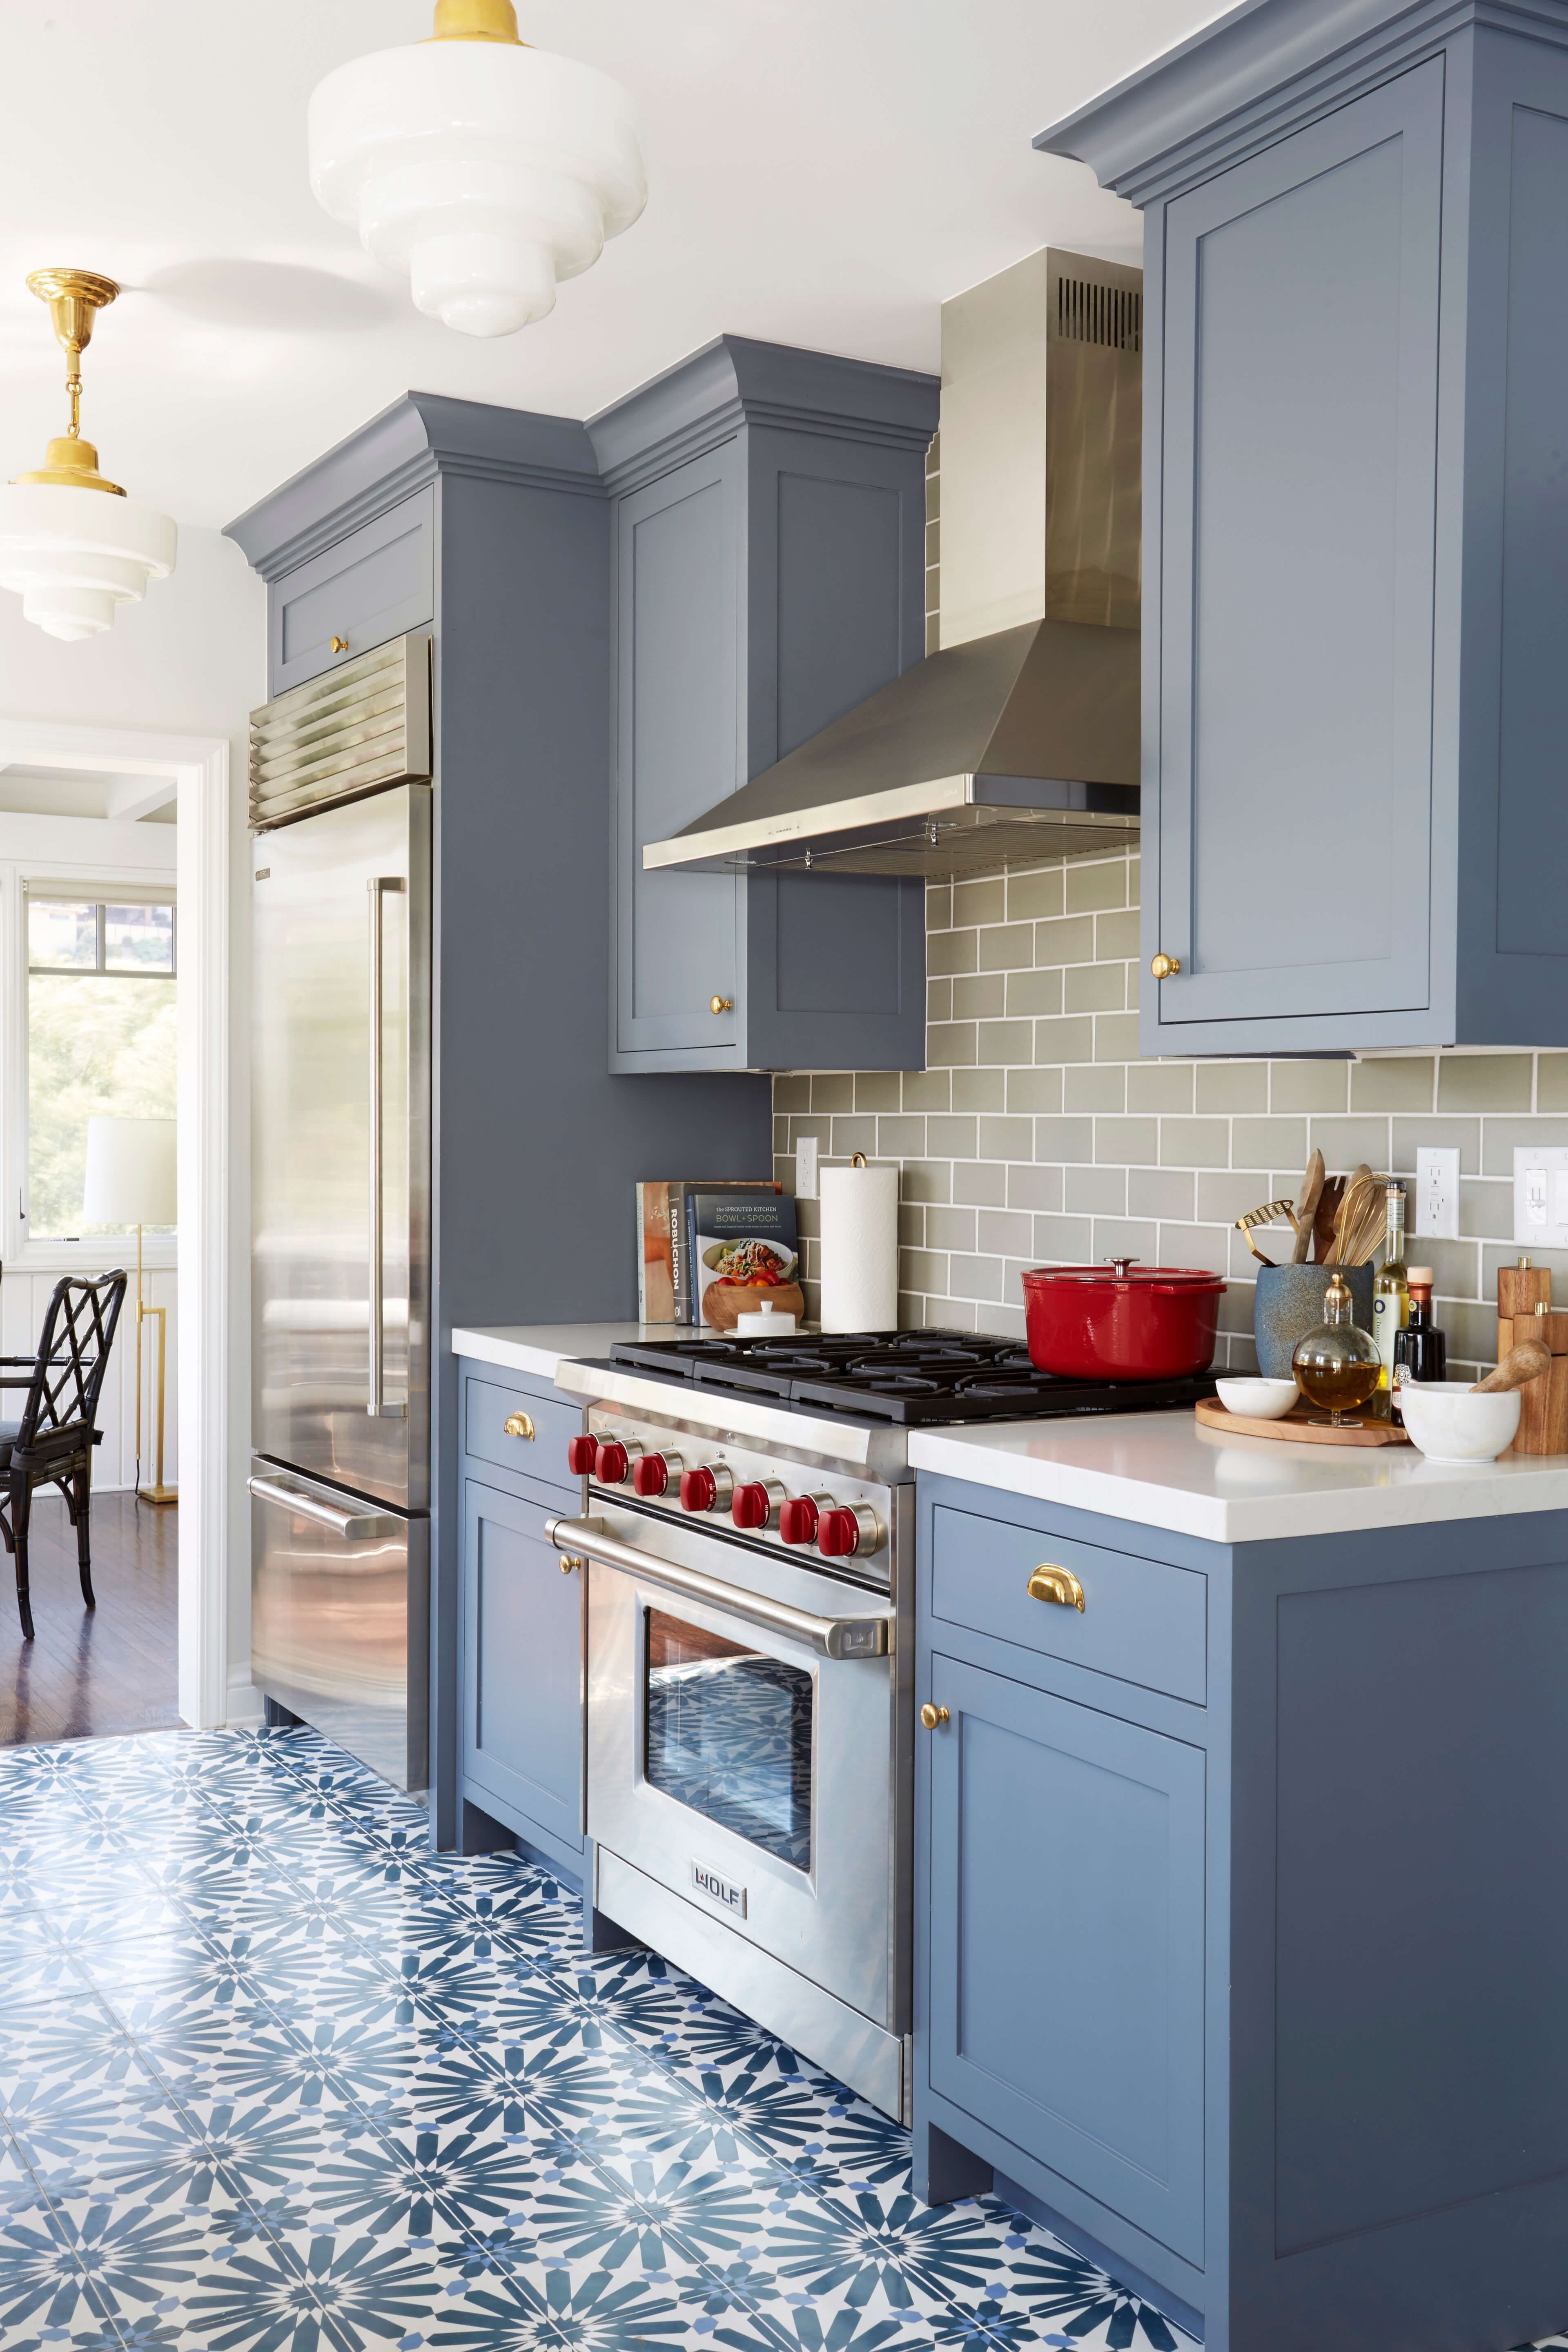 Pin by Christl on Room Decor   Kitchen cabinets painted grey, Blue ...